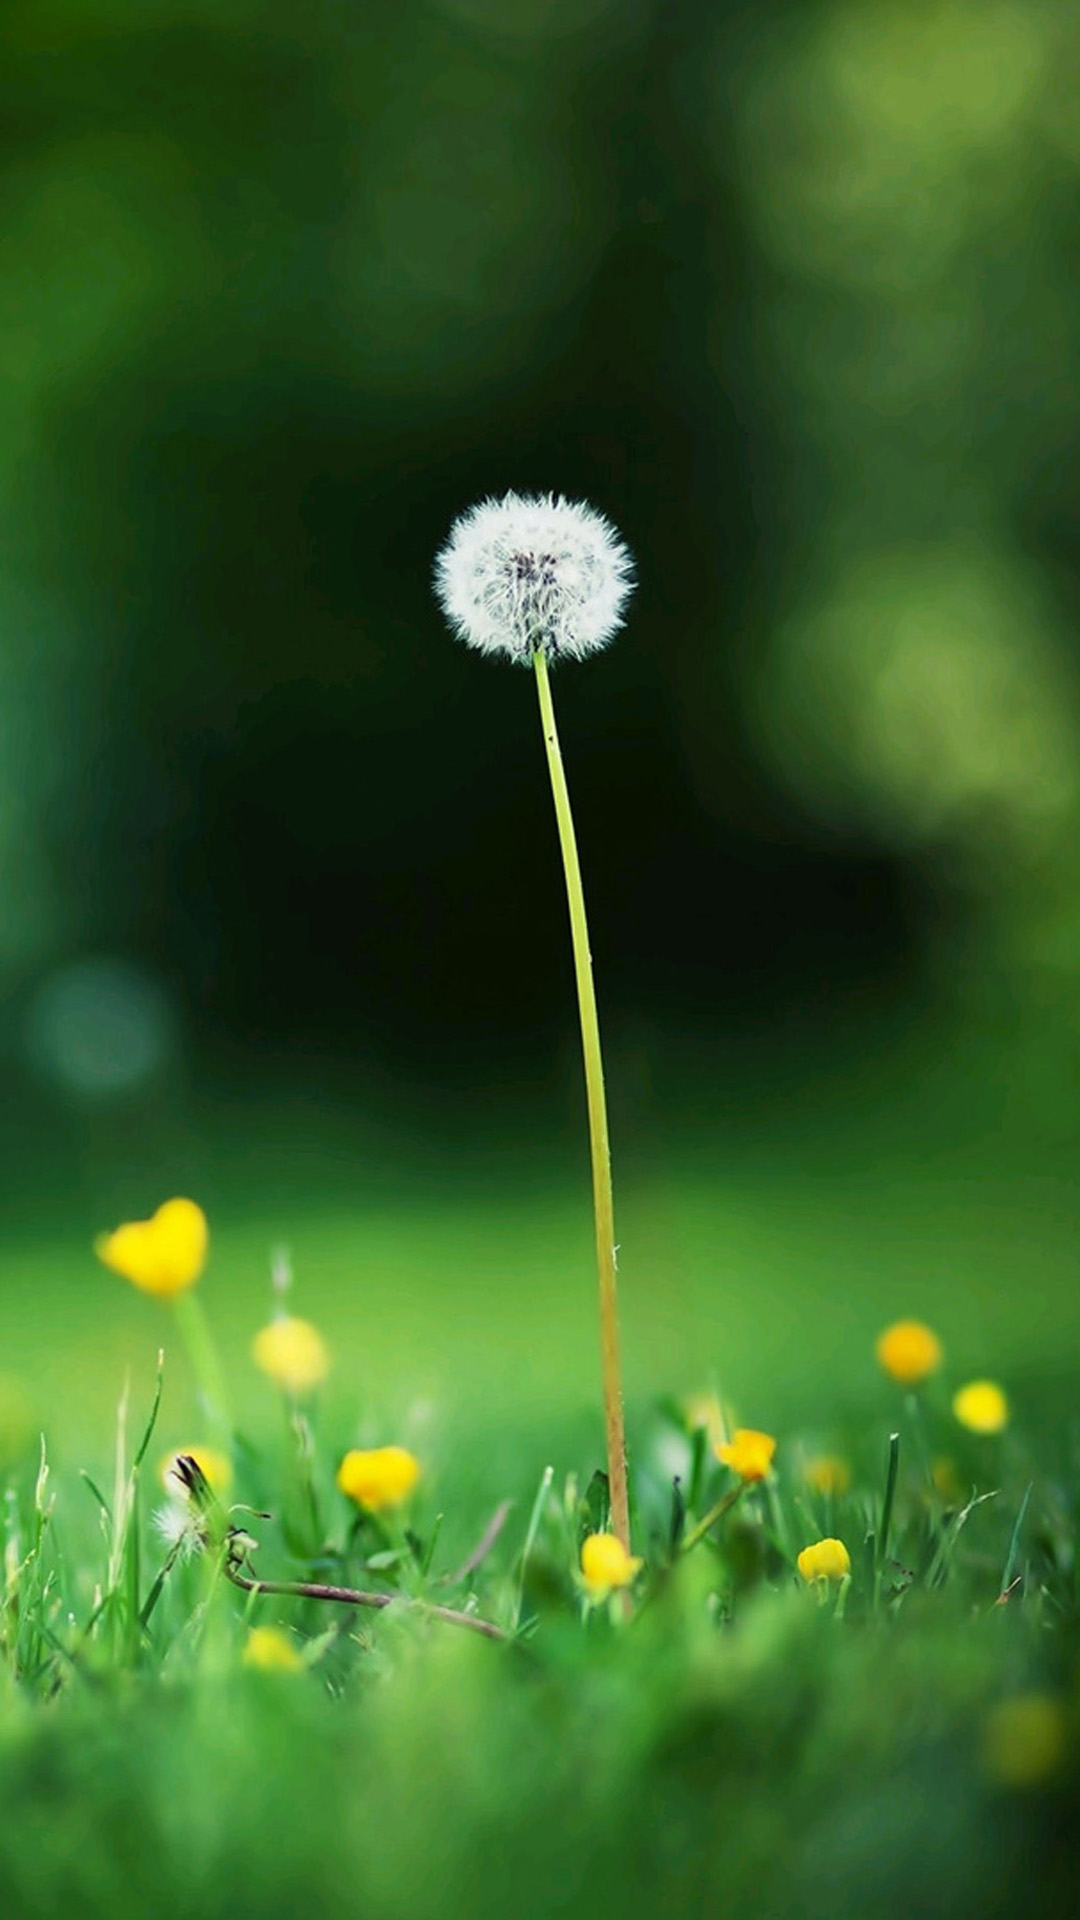 Autumn Dandelion Samsung Wallpapers Samsung Galaxy S5 Galaxy S4 1080x1920